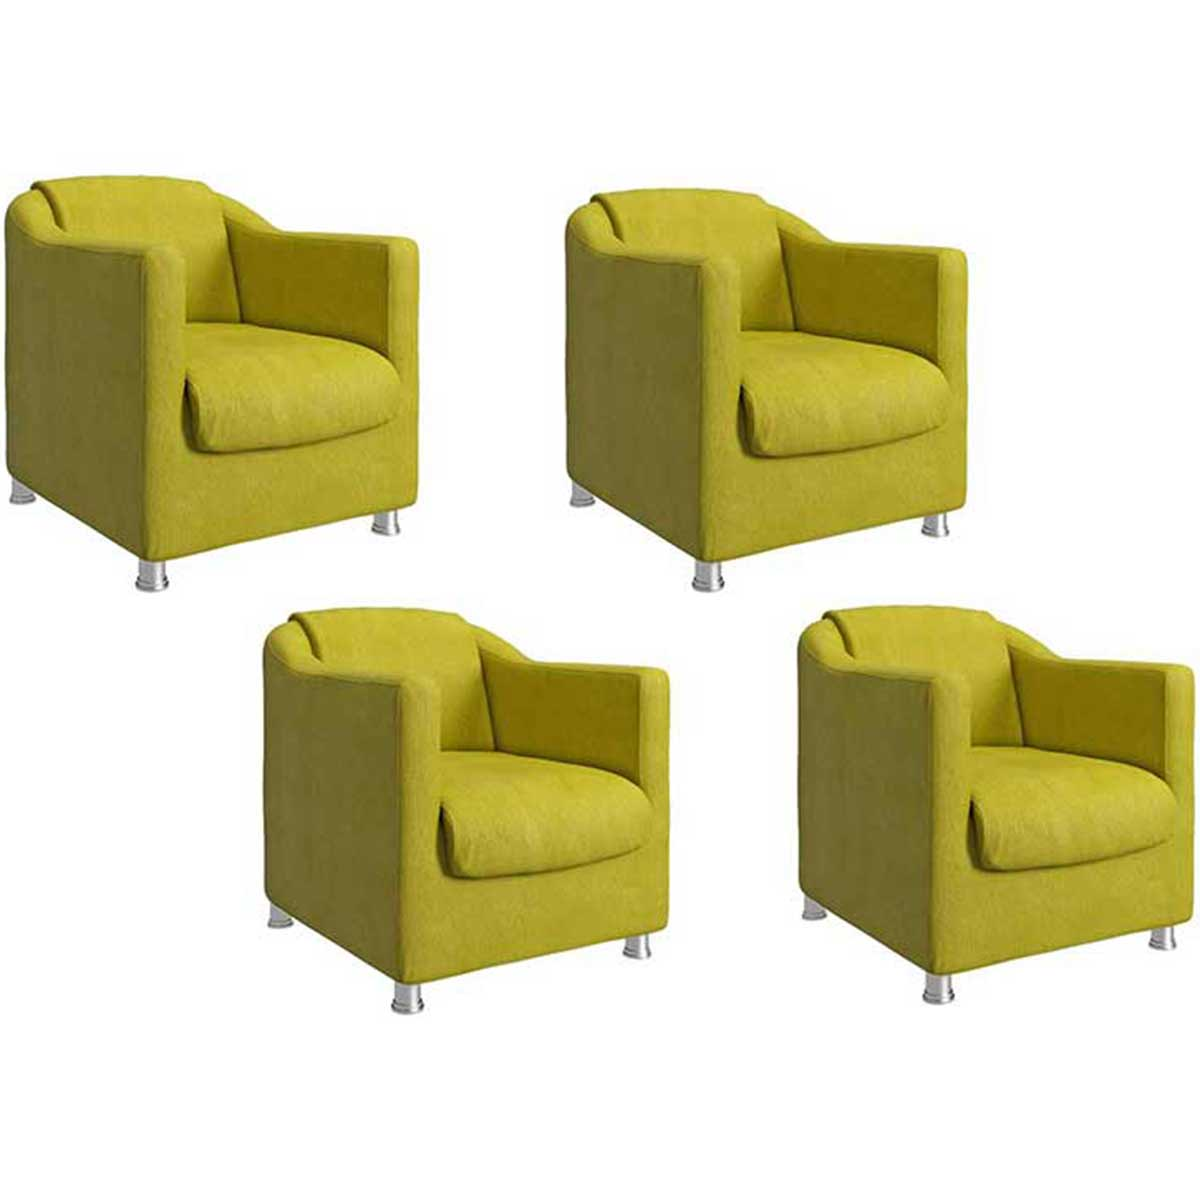 Kit 4 Poltronas Decorativas Luiza Animale Amarelo